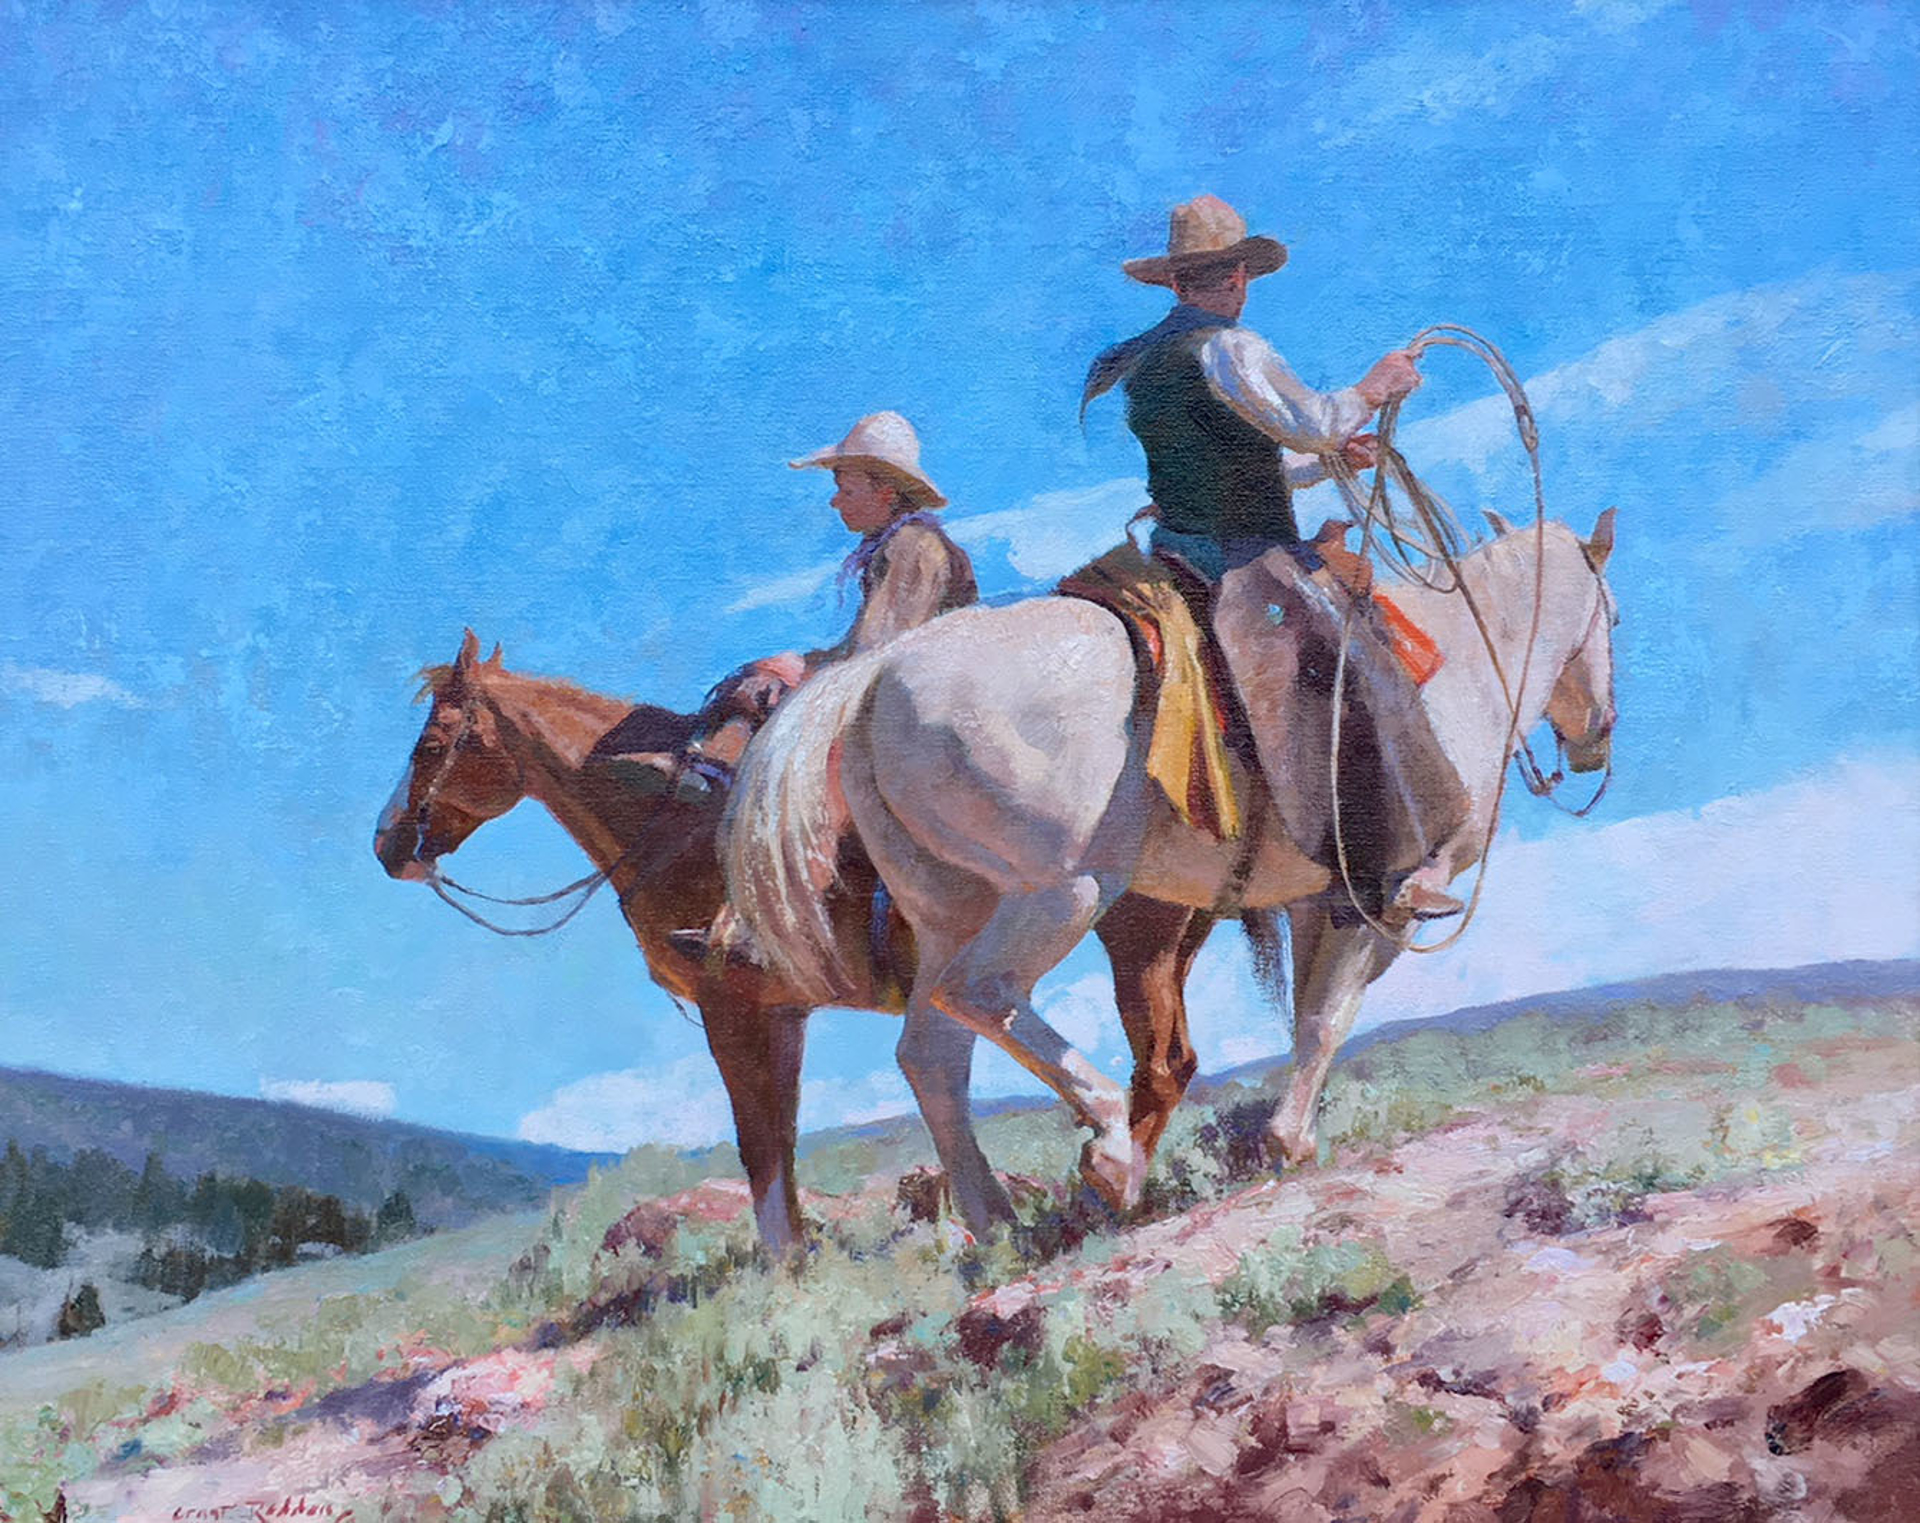 Two Wyoming Cowboys by Grant Redden